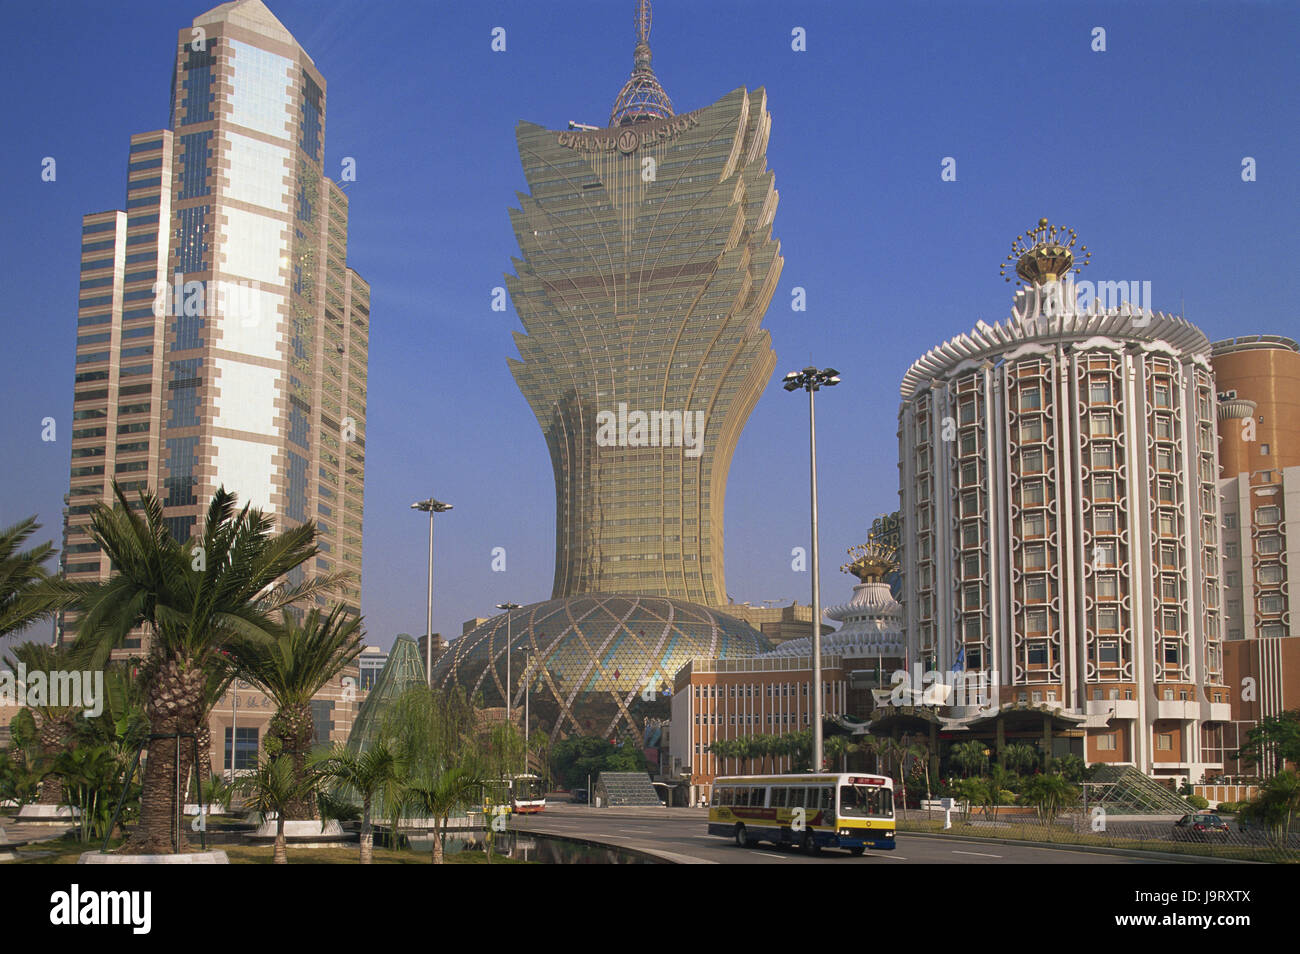 China,Macau,town view,Grand Lisboa hotel and casino,Asia,Eastern Asia,peninsula,town,building,architecture,hotel - Stock Image